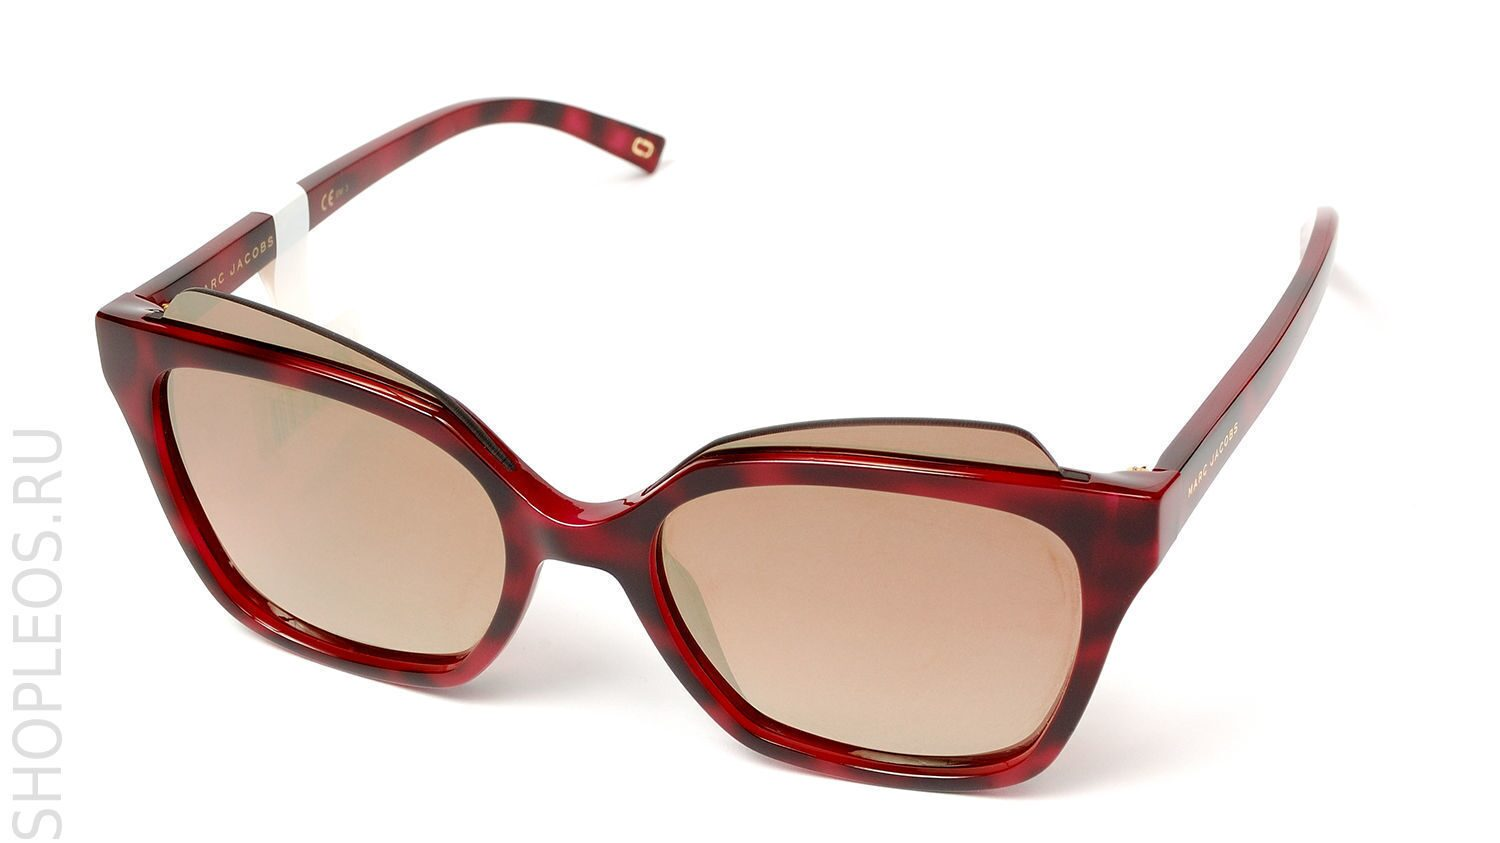 MARC JACOBS WOMAN MARC 106/S N8S